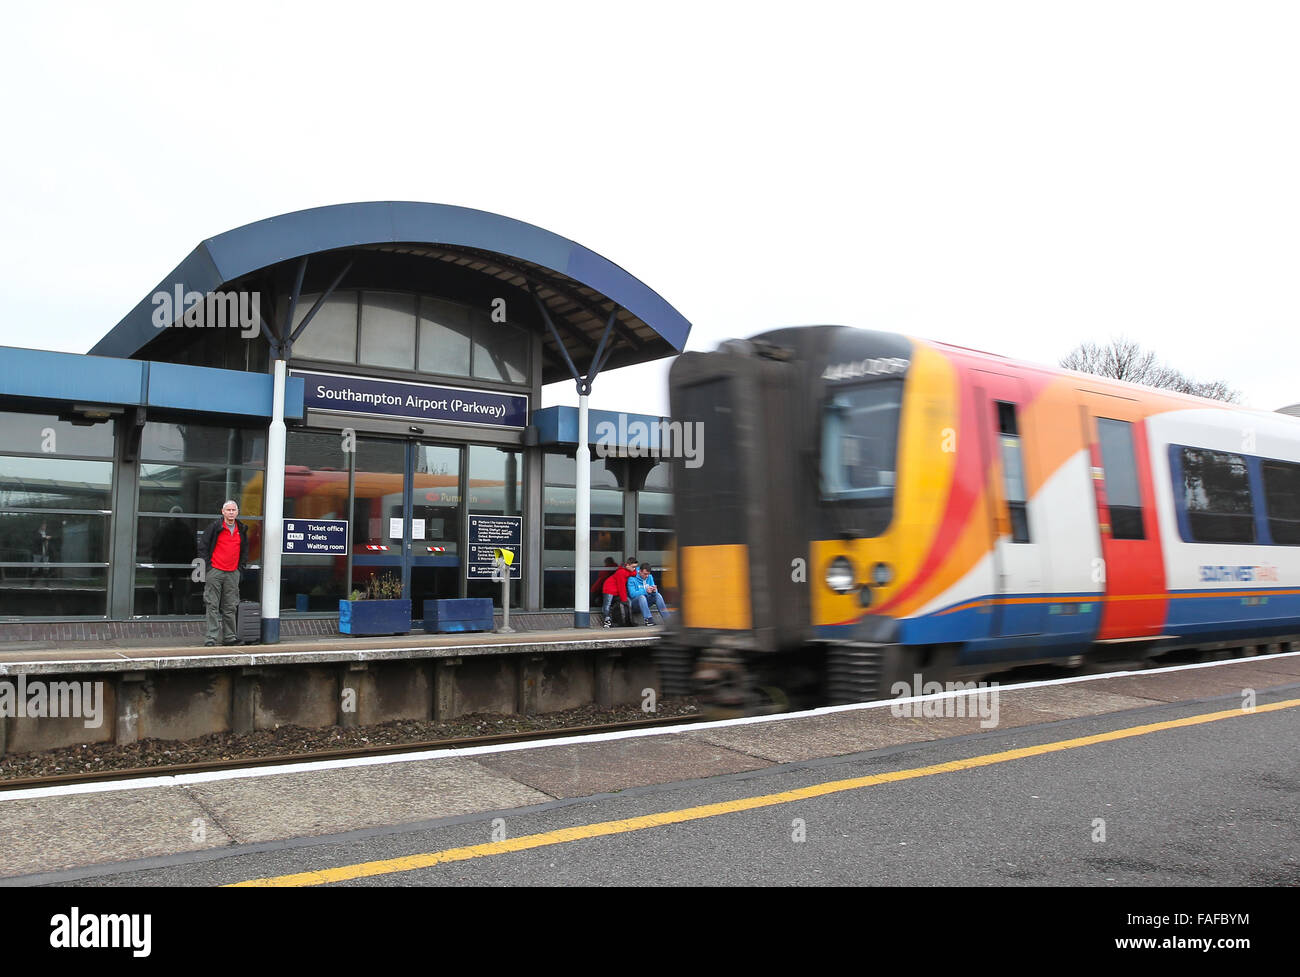 A South west Train arriving at Southampton Airport Parkway railway station next to Southampton Airport - Stock Image